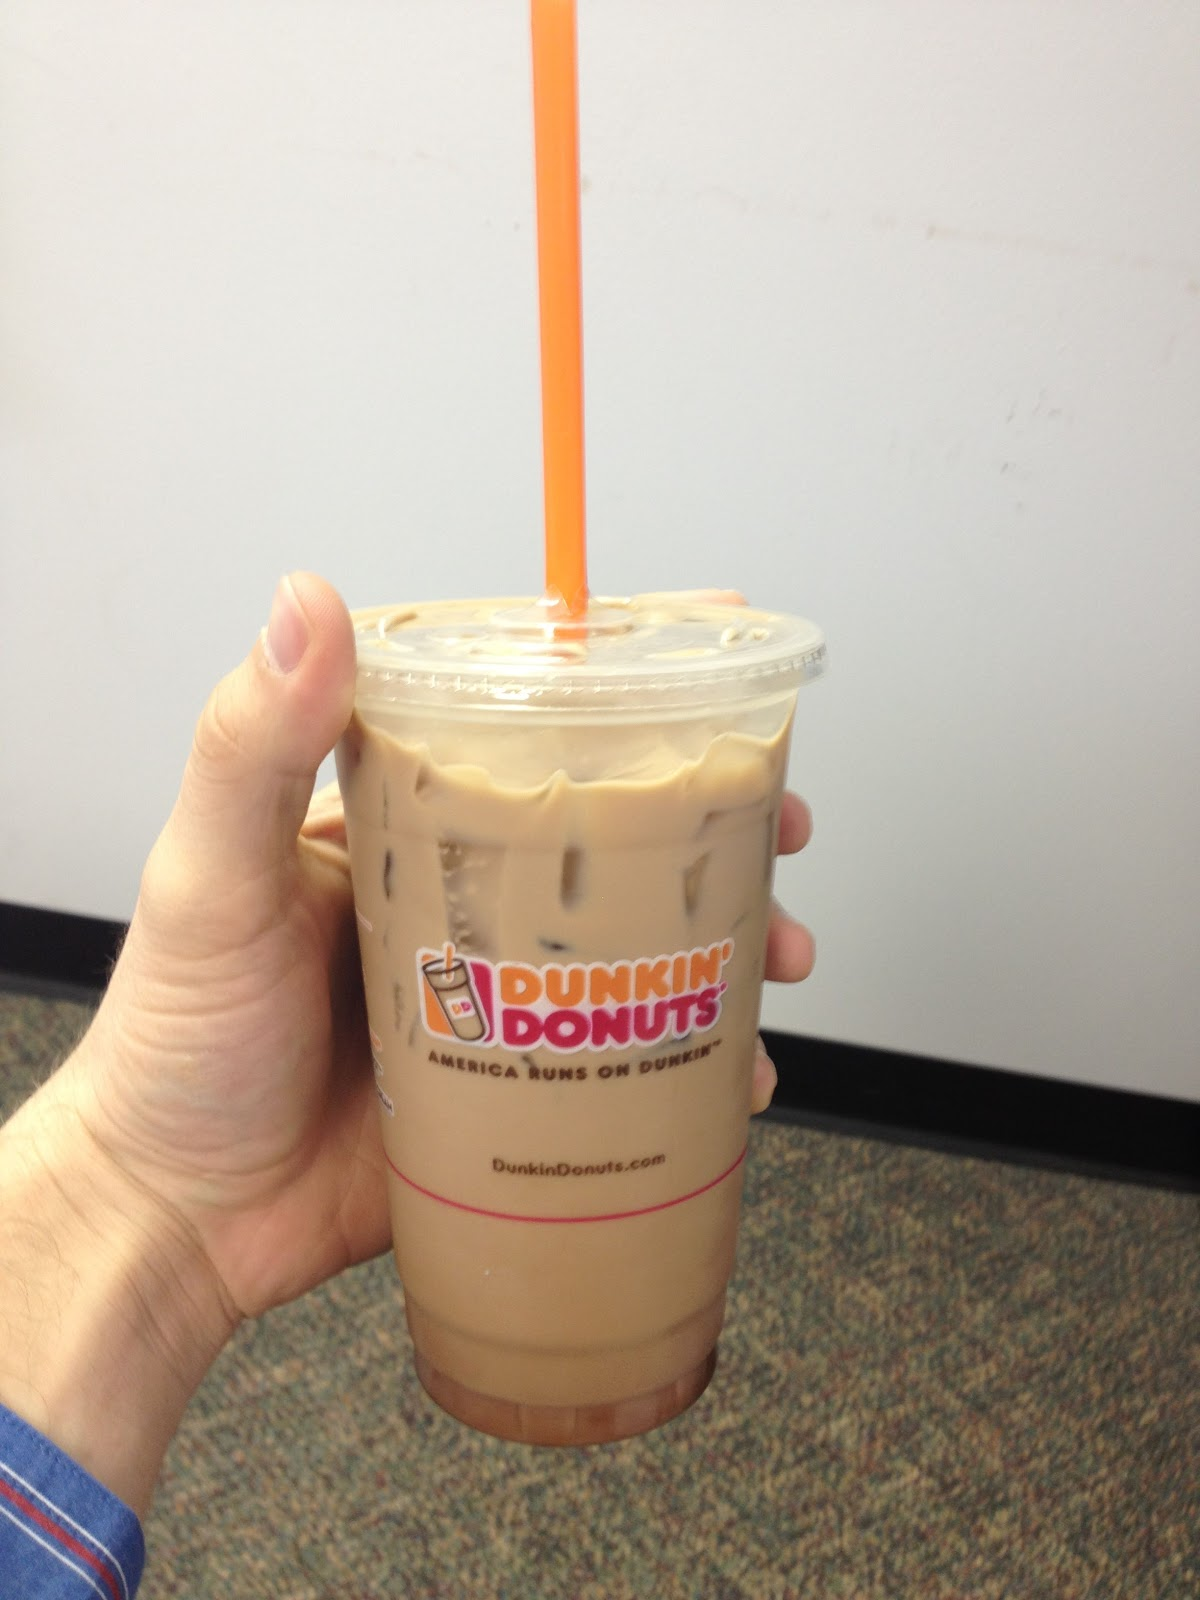 Image Result For How Much Is A Medium Iced Coffee From Dunkin Donuts